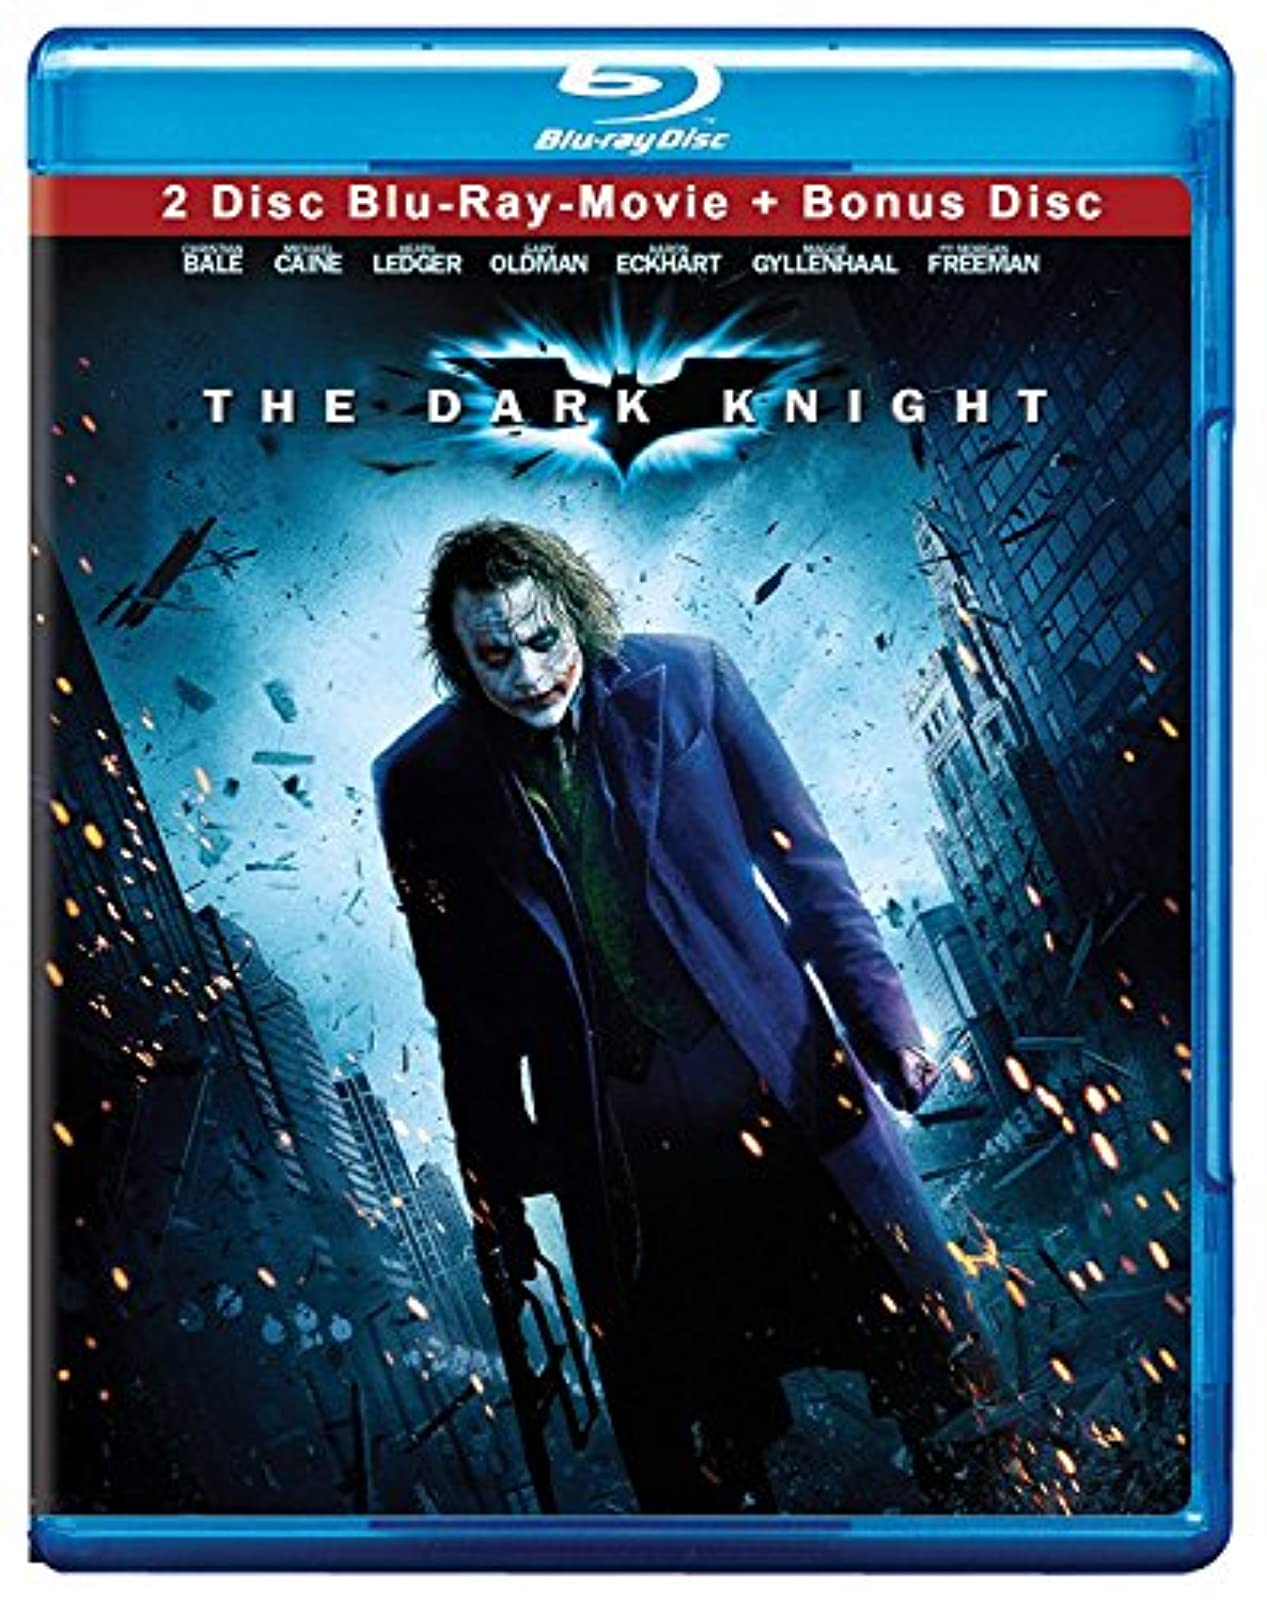 The Dark Knight Bd Live Blu-Ray On Blu-Ray With Christian Bale